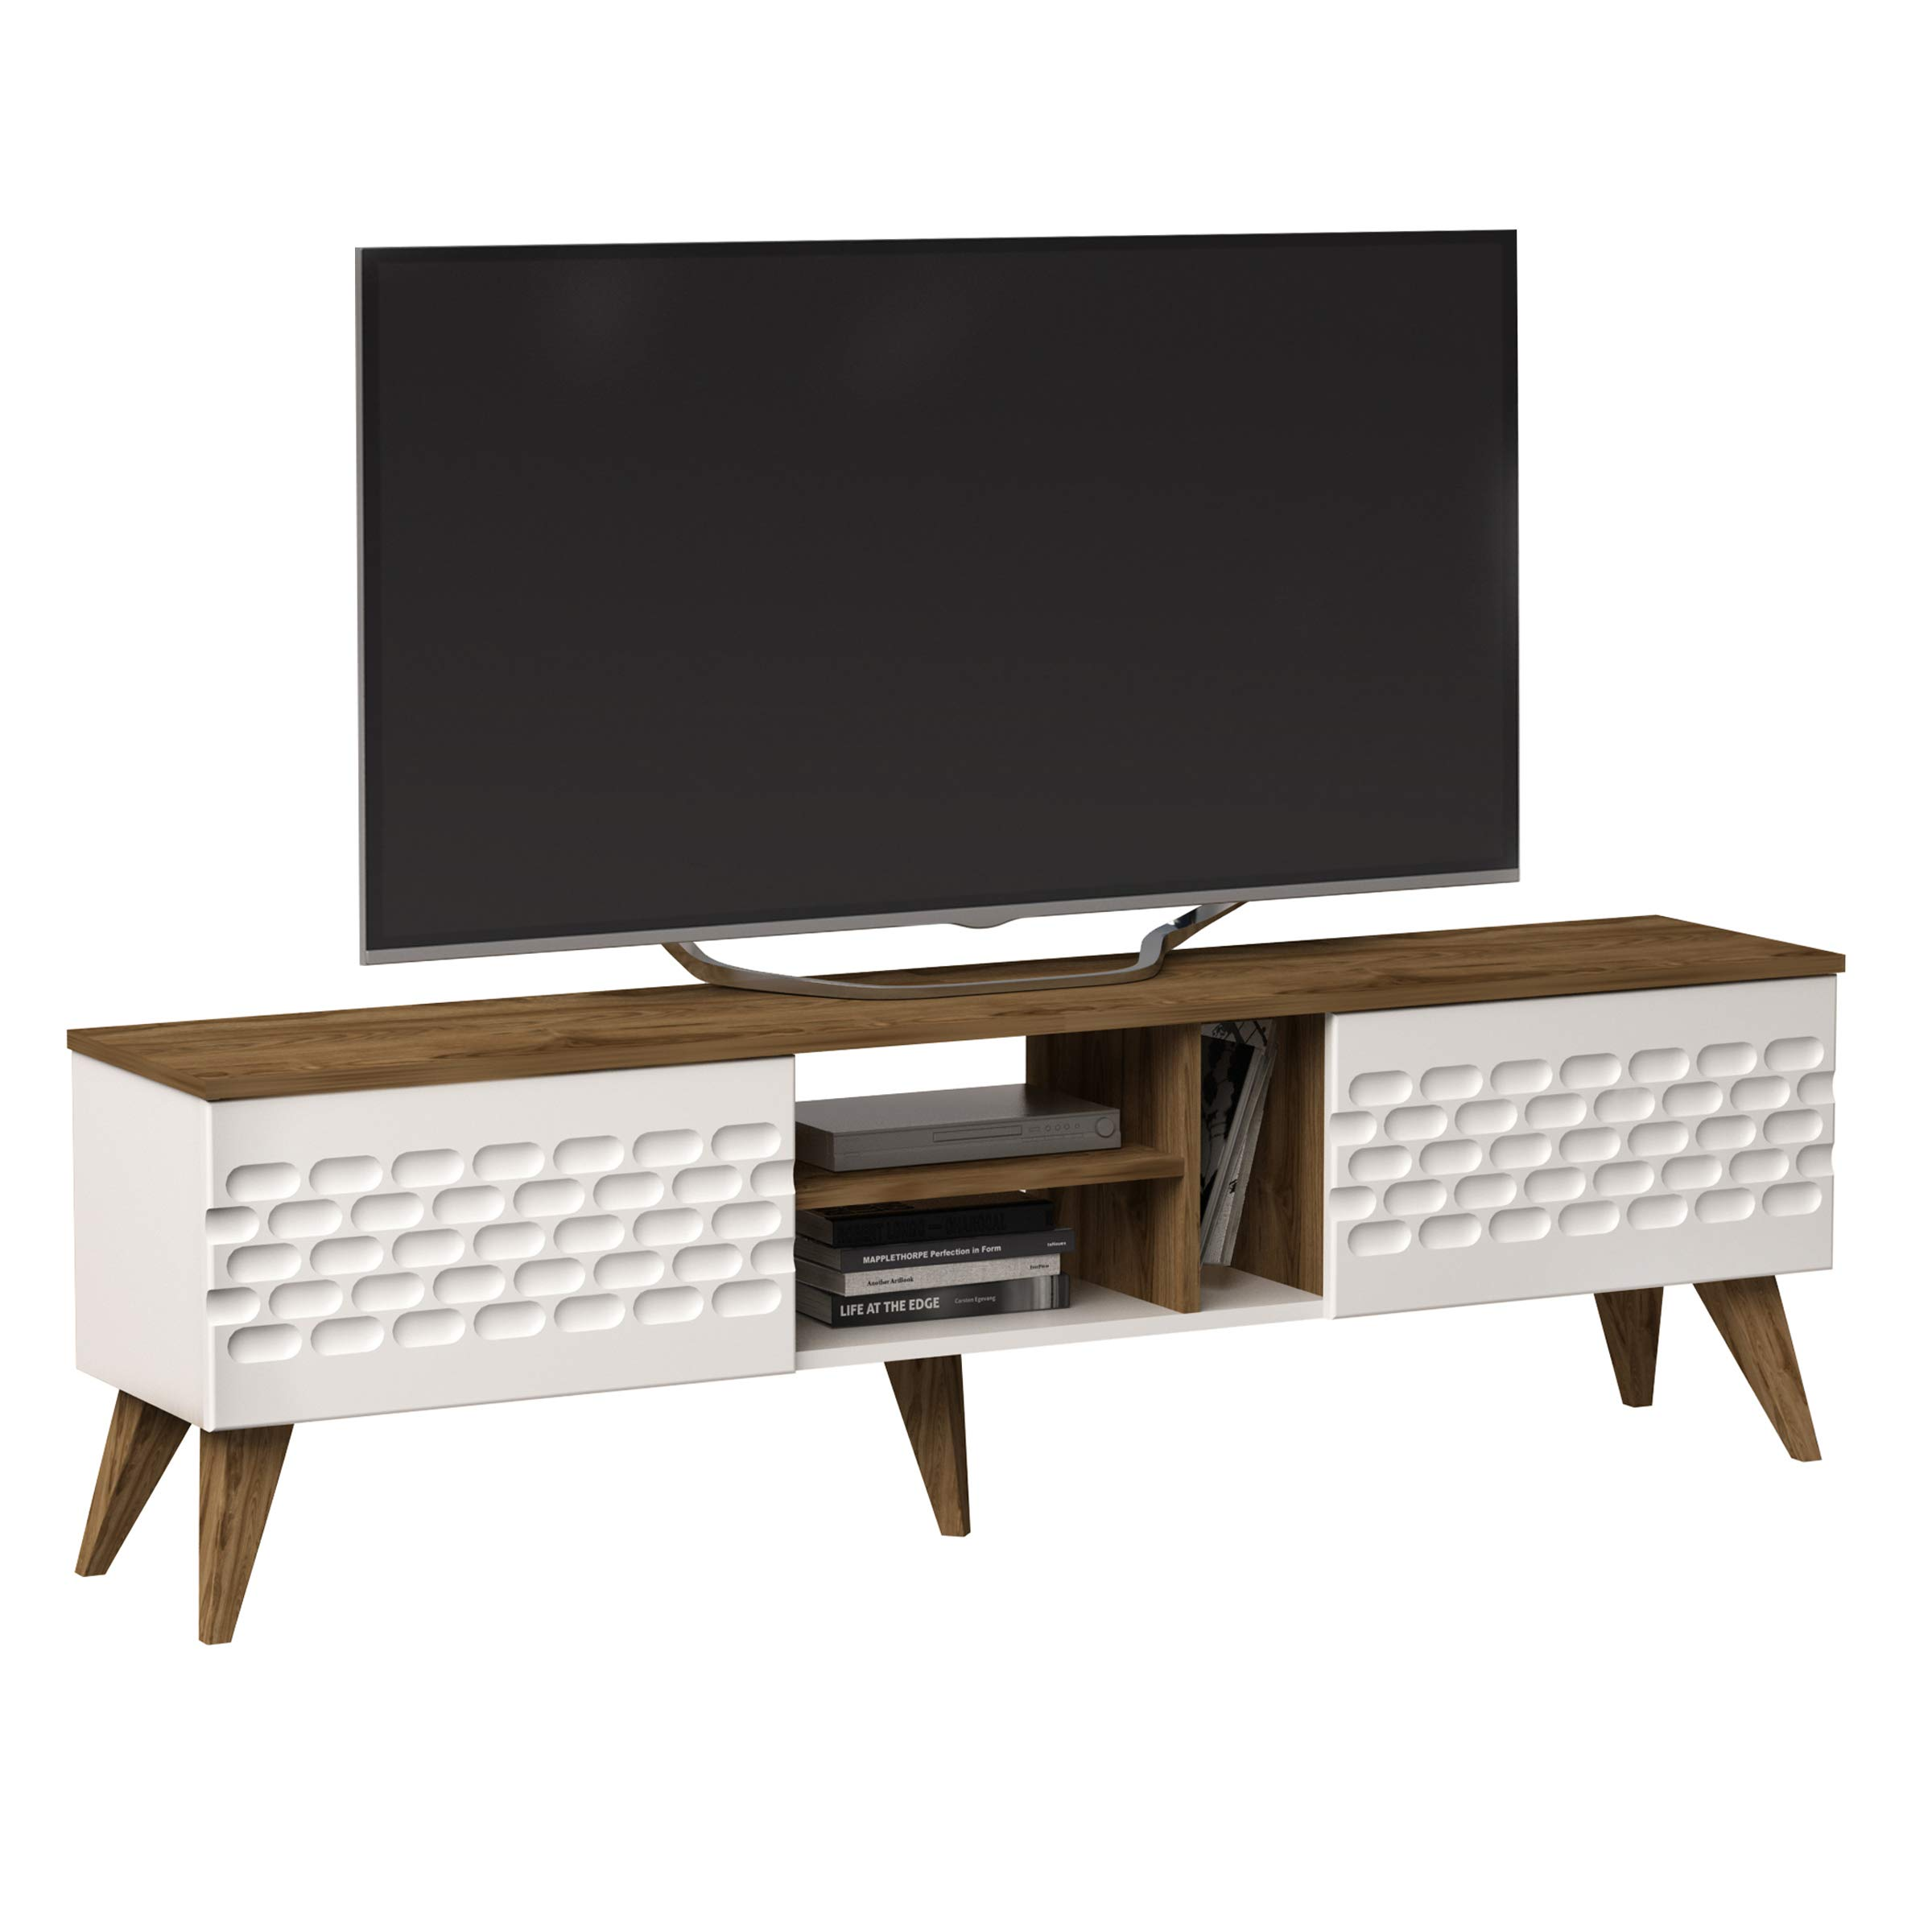 Decorotika Eggea Modern TV Stand Media Console fits up to 70'' TVs with Closed Cabinets and Open Shelves